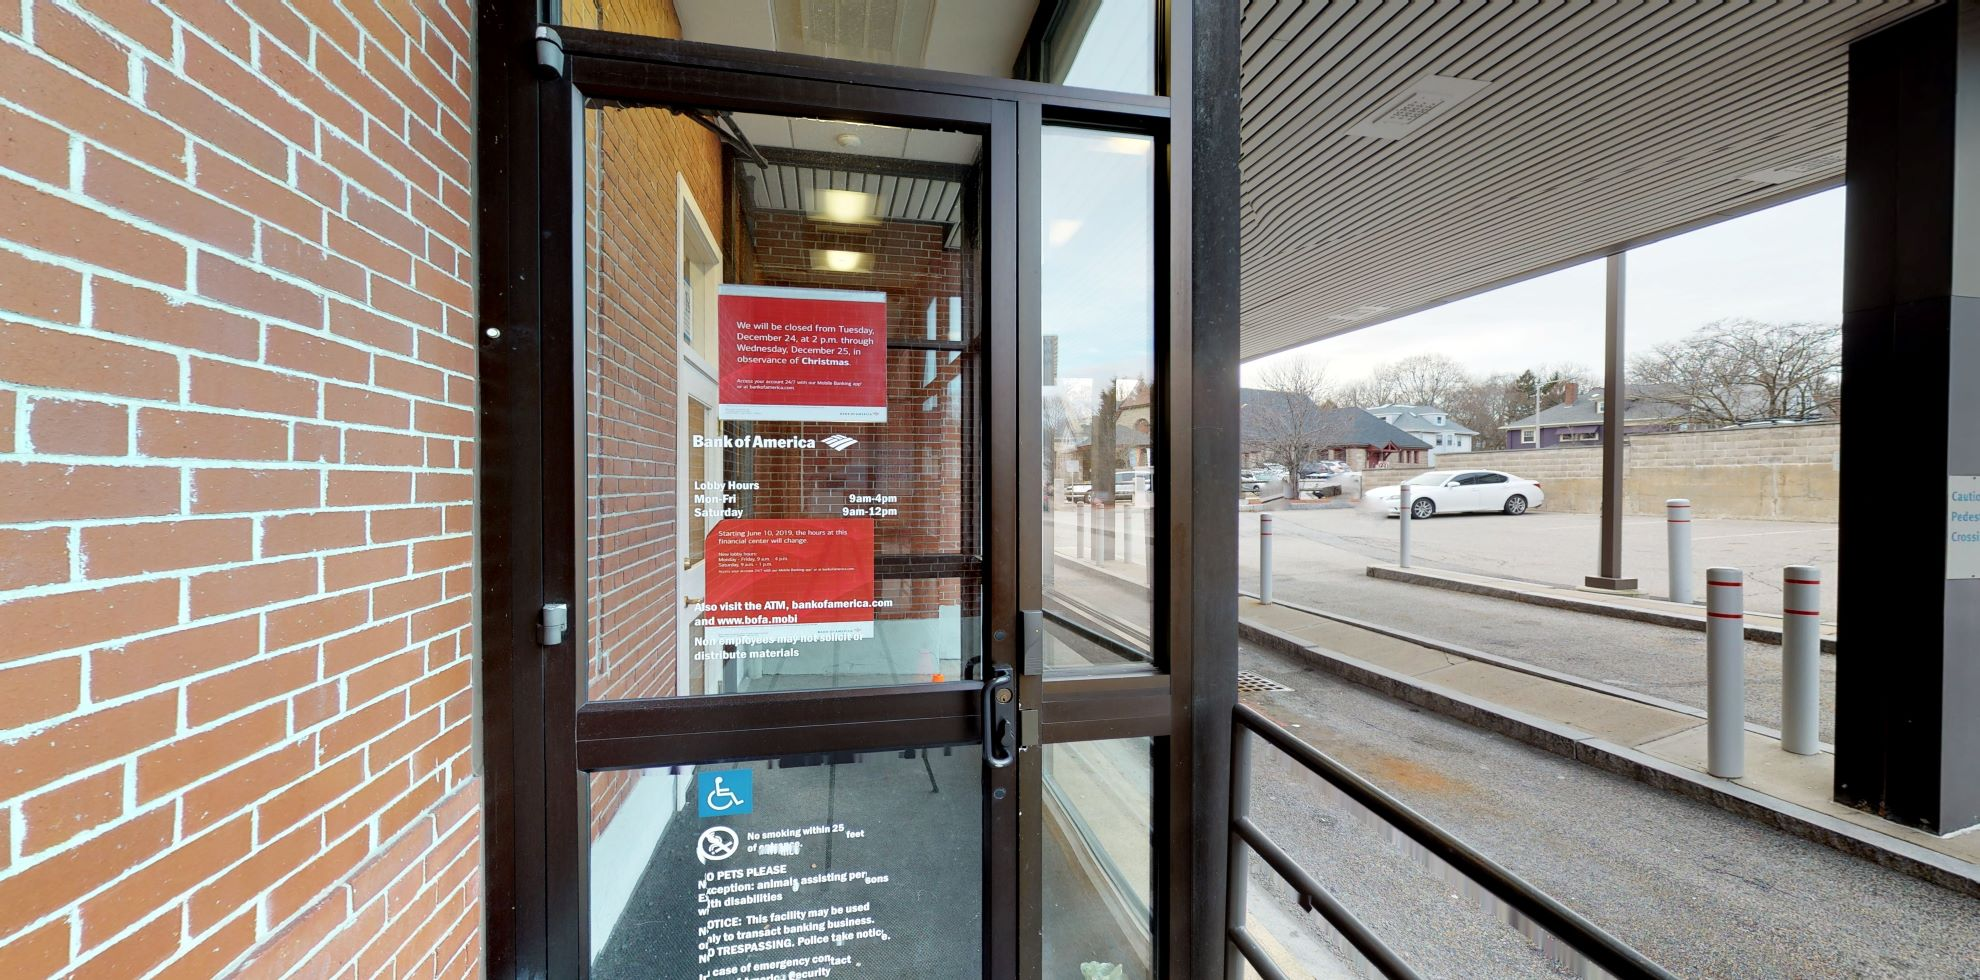 Bank of America financial center with drive-thru ATM | 1857 Centre St, West Roxbury, MA 02132